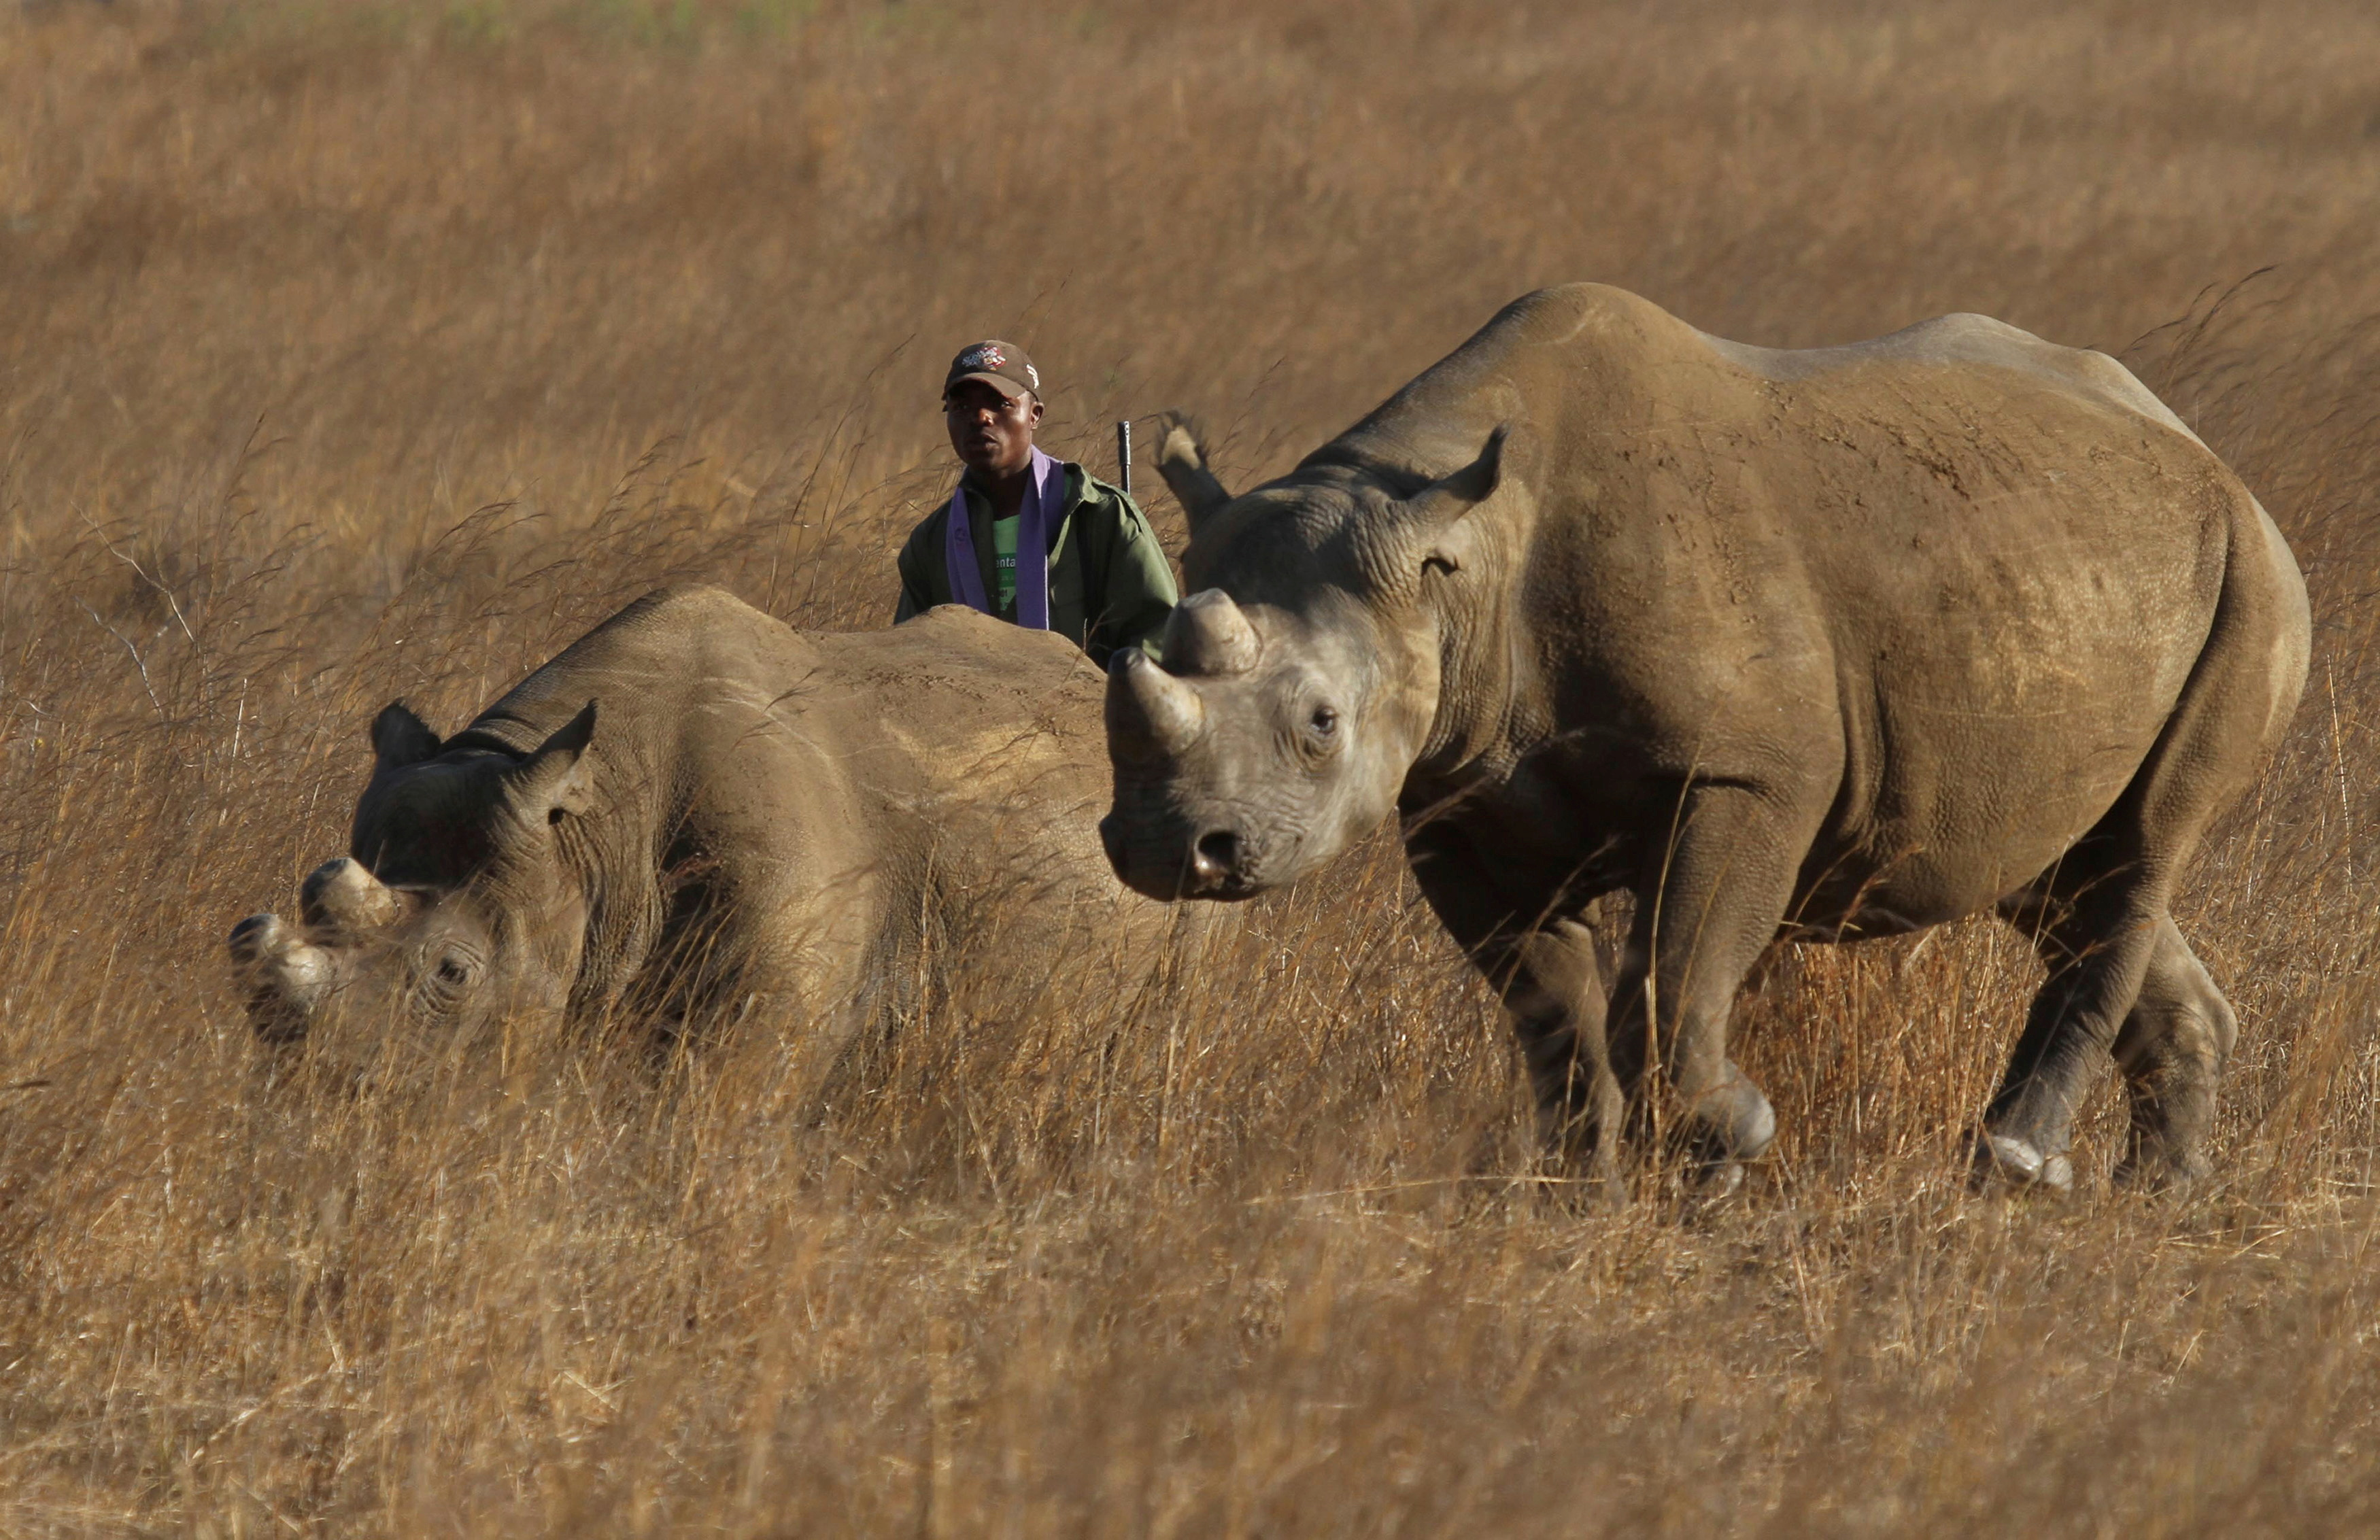 A ranger walks behind a pair of black rhinoceros at the Imire Rhino and Wildlife Conservation Park near Marondera, east of the capital Harare, September 22, 2014.  The population of the species has dwindled due to poaching activities. REUTERS/Philimon Bulawayo